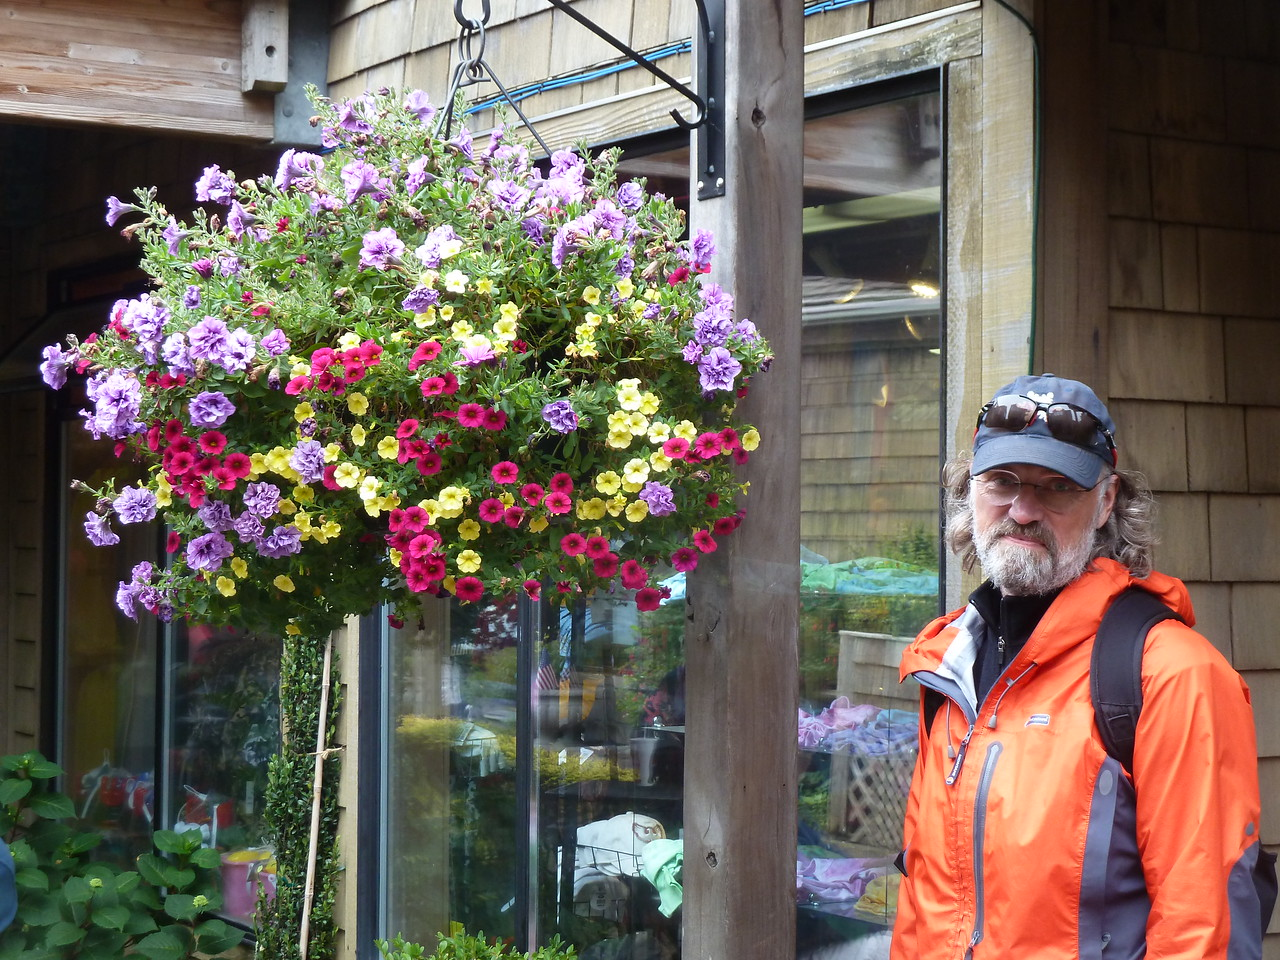 Amazing hanging baskets in Cannon Beach, Oregon.